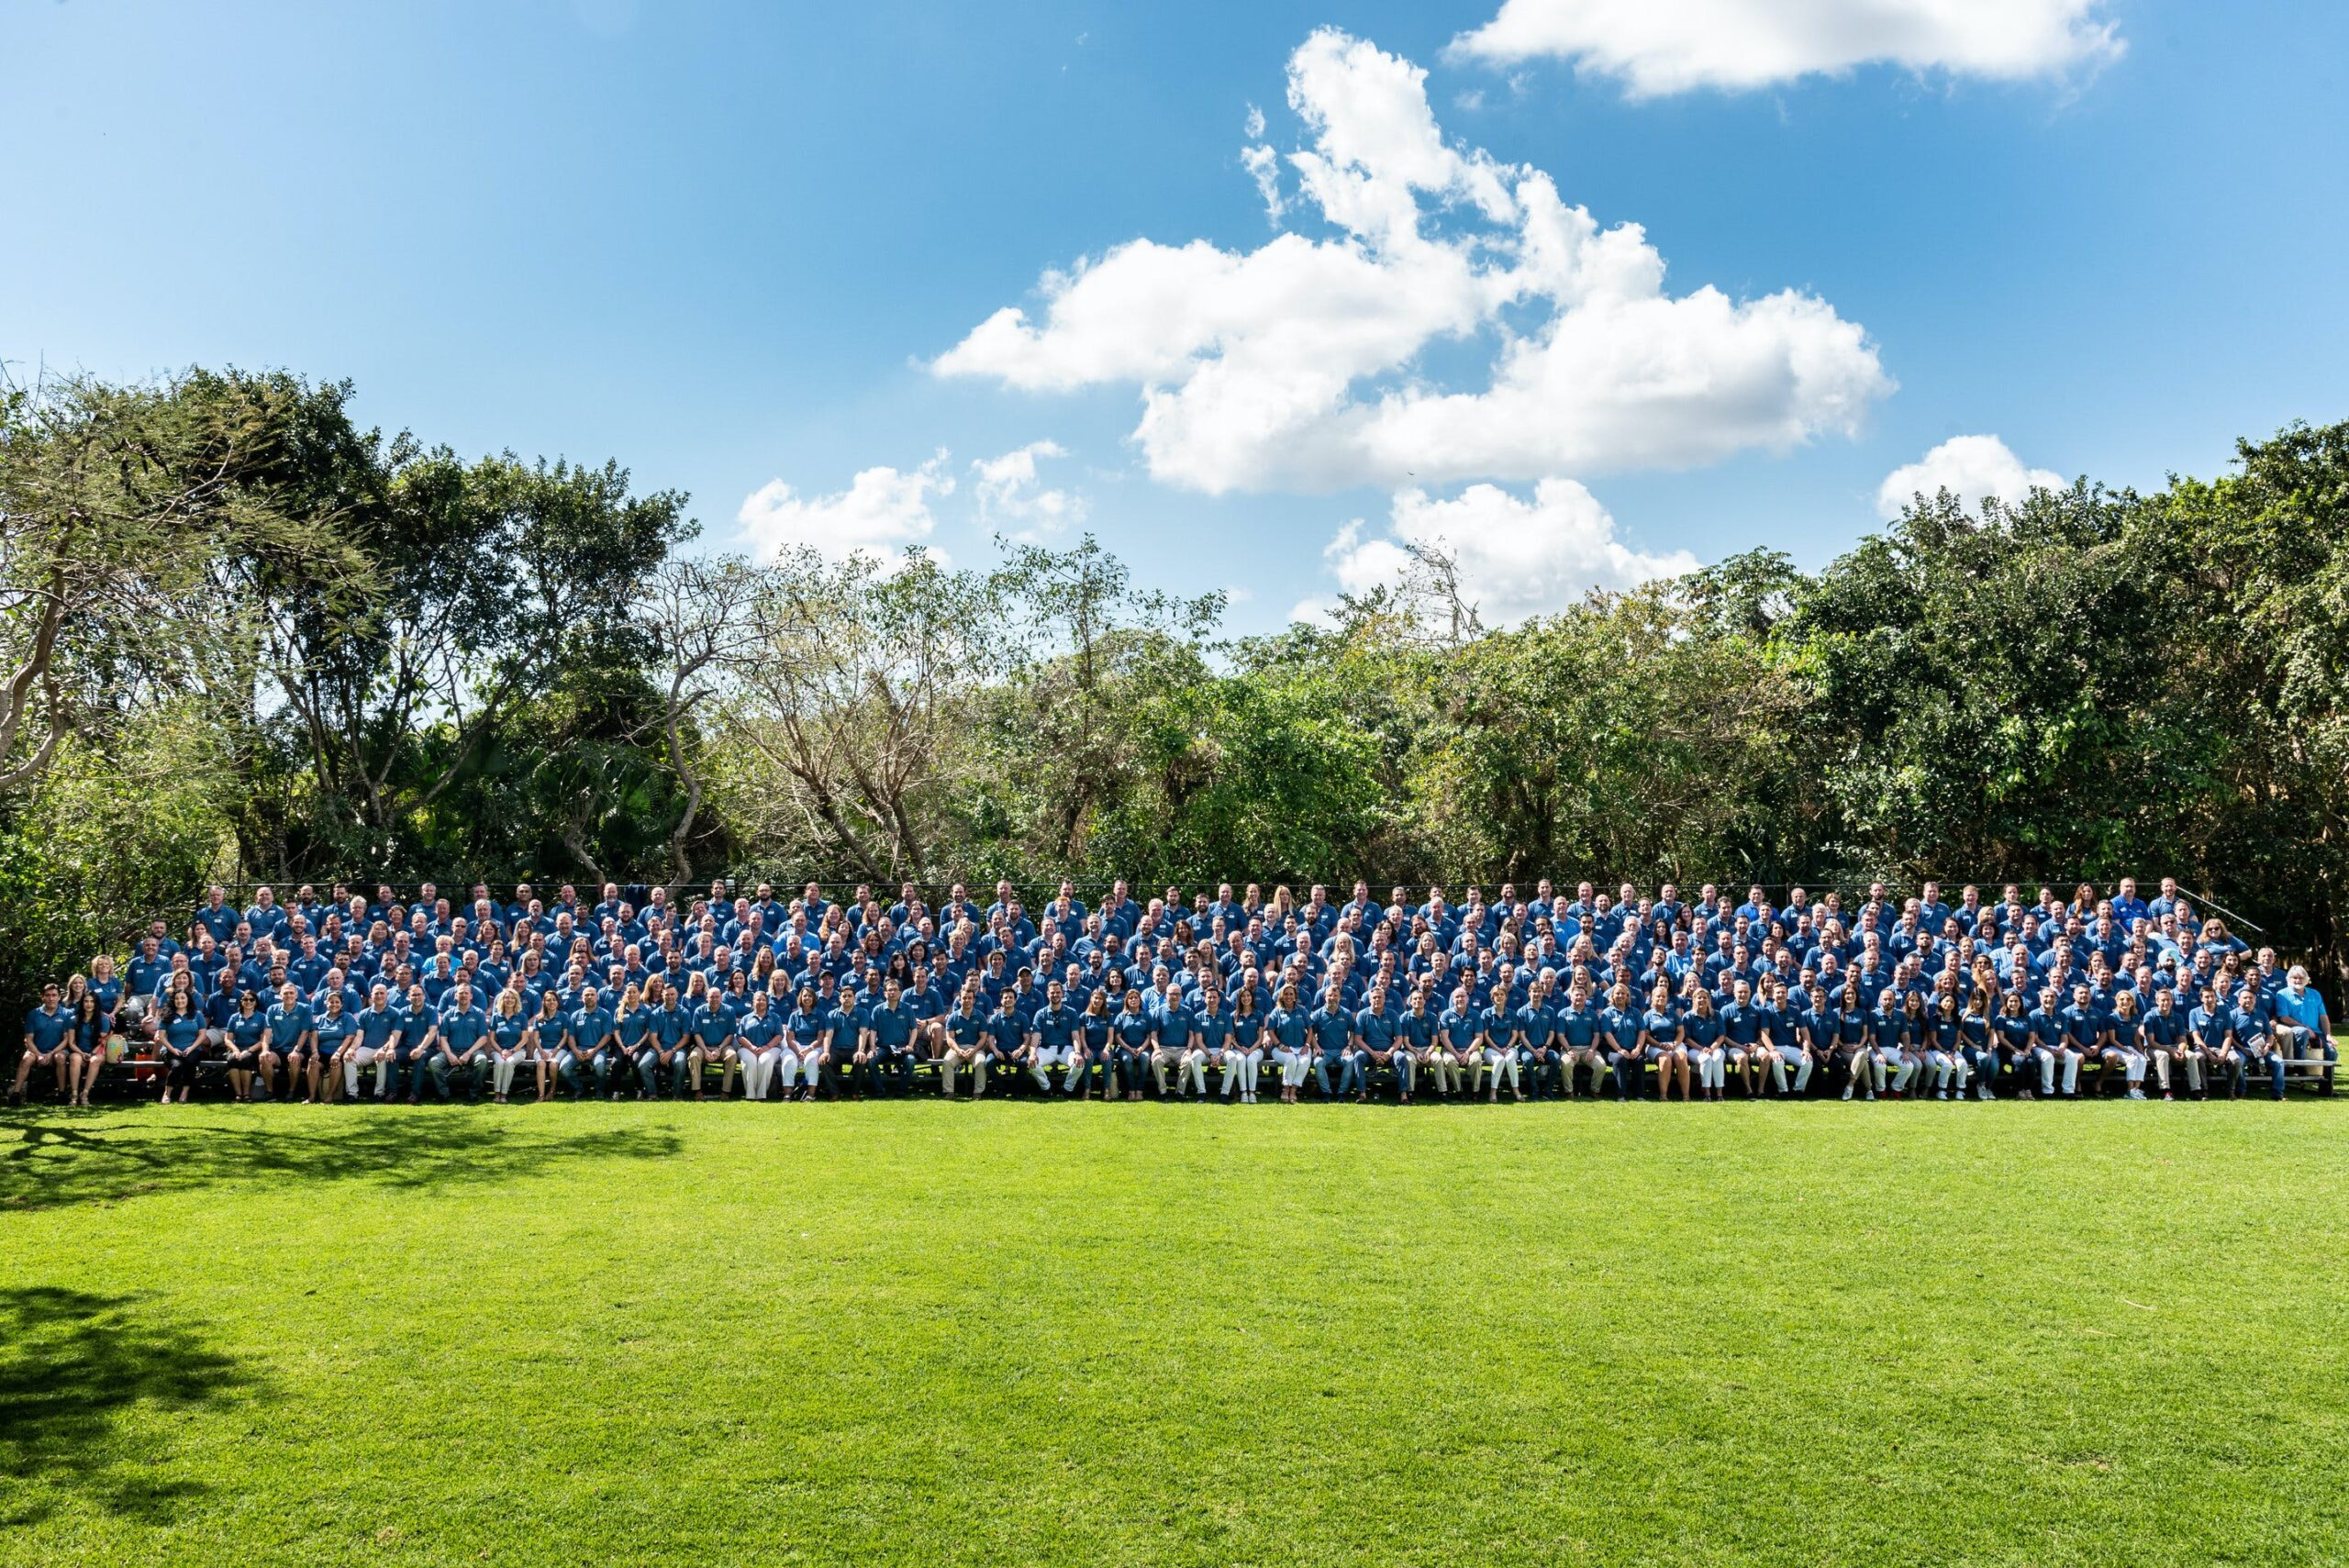 """Image of rsz c100 group photo 1 3 scaled in Record number of participating companies in the latest edition of the """"Cosentino 100"""" Convention - Cosentino"""